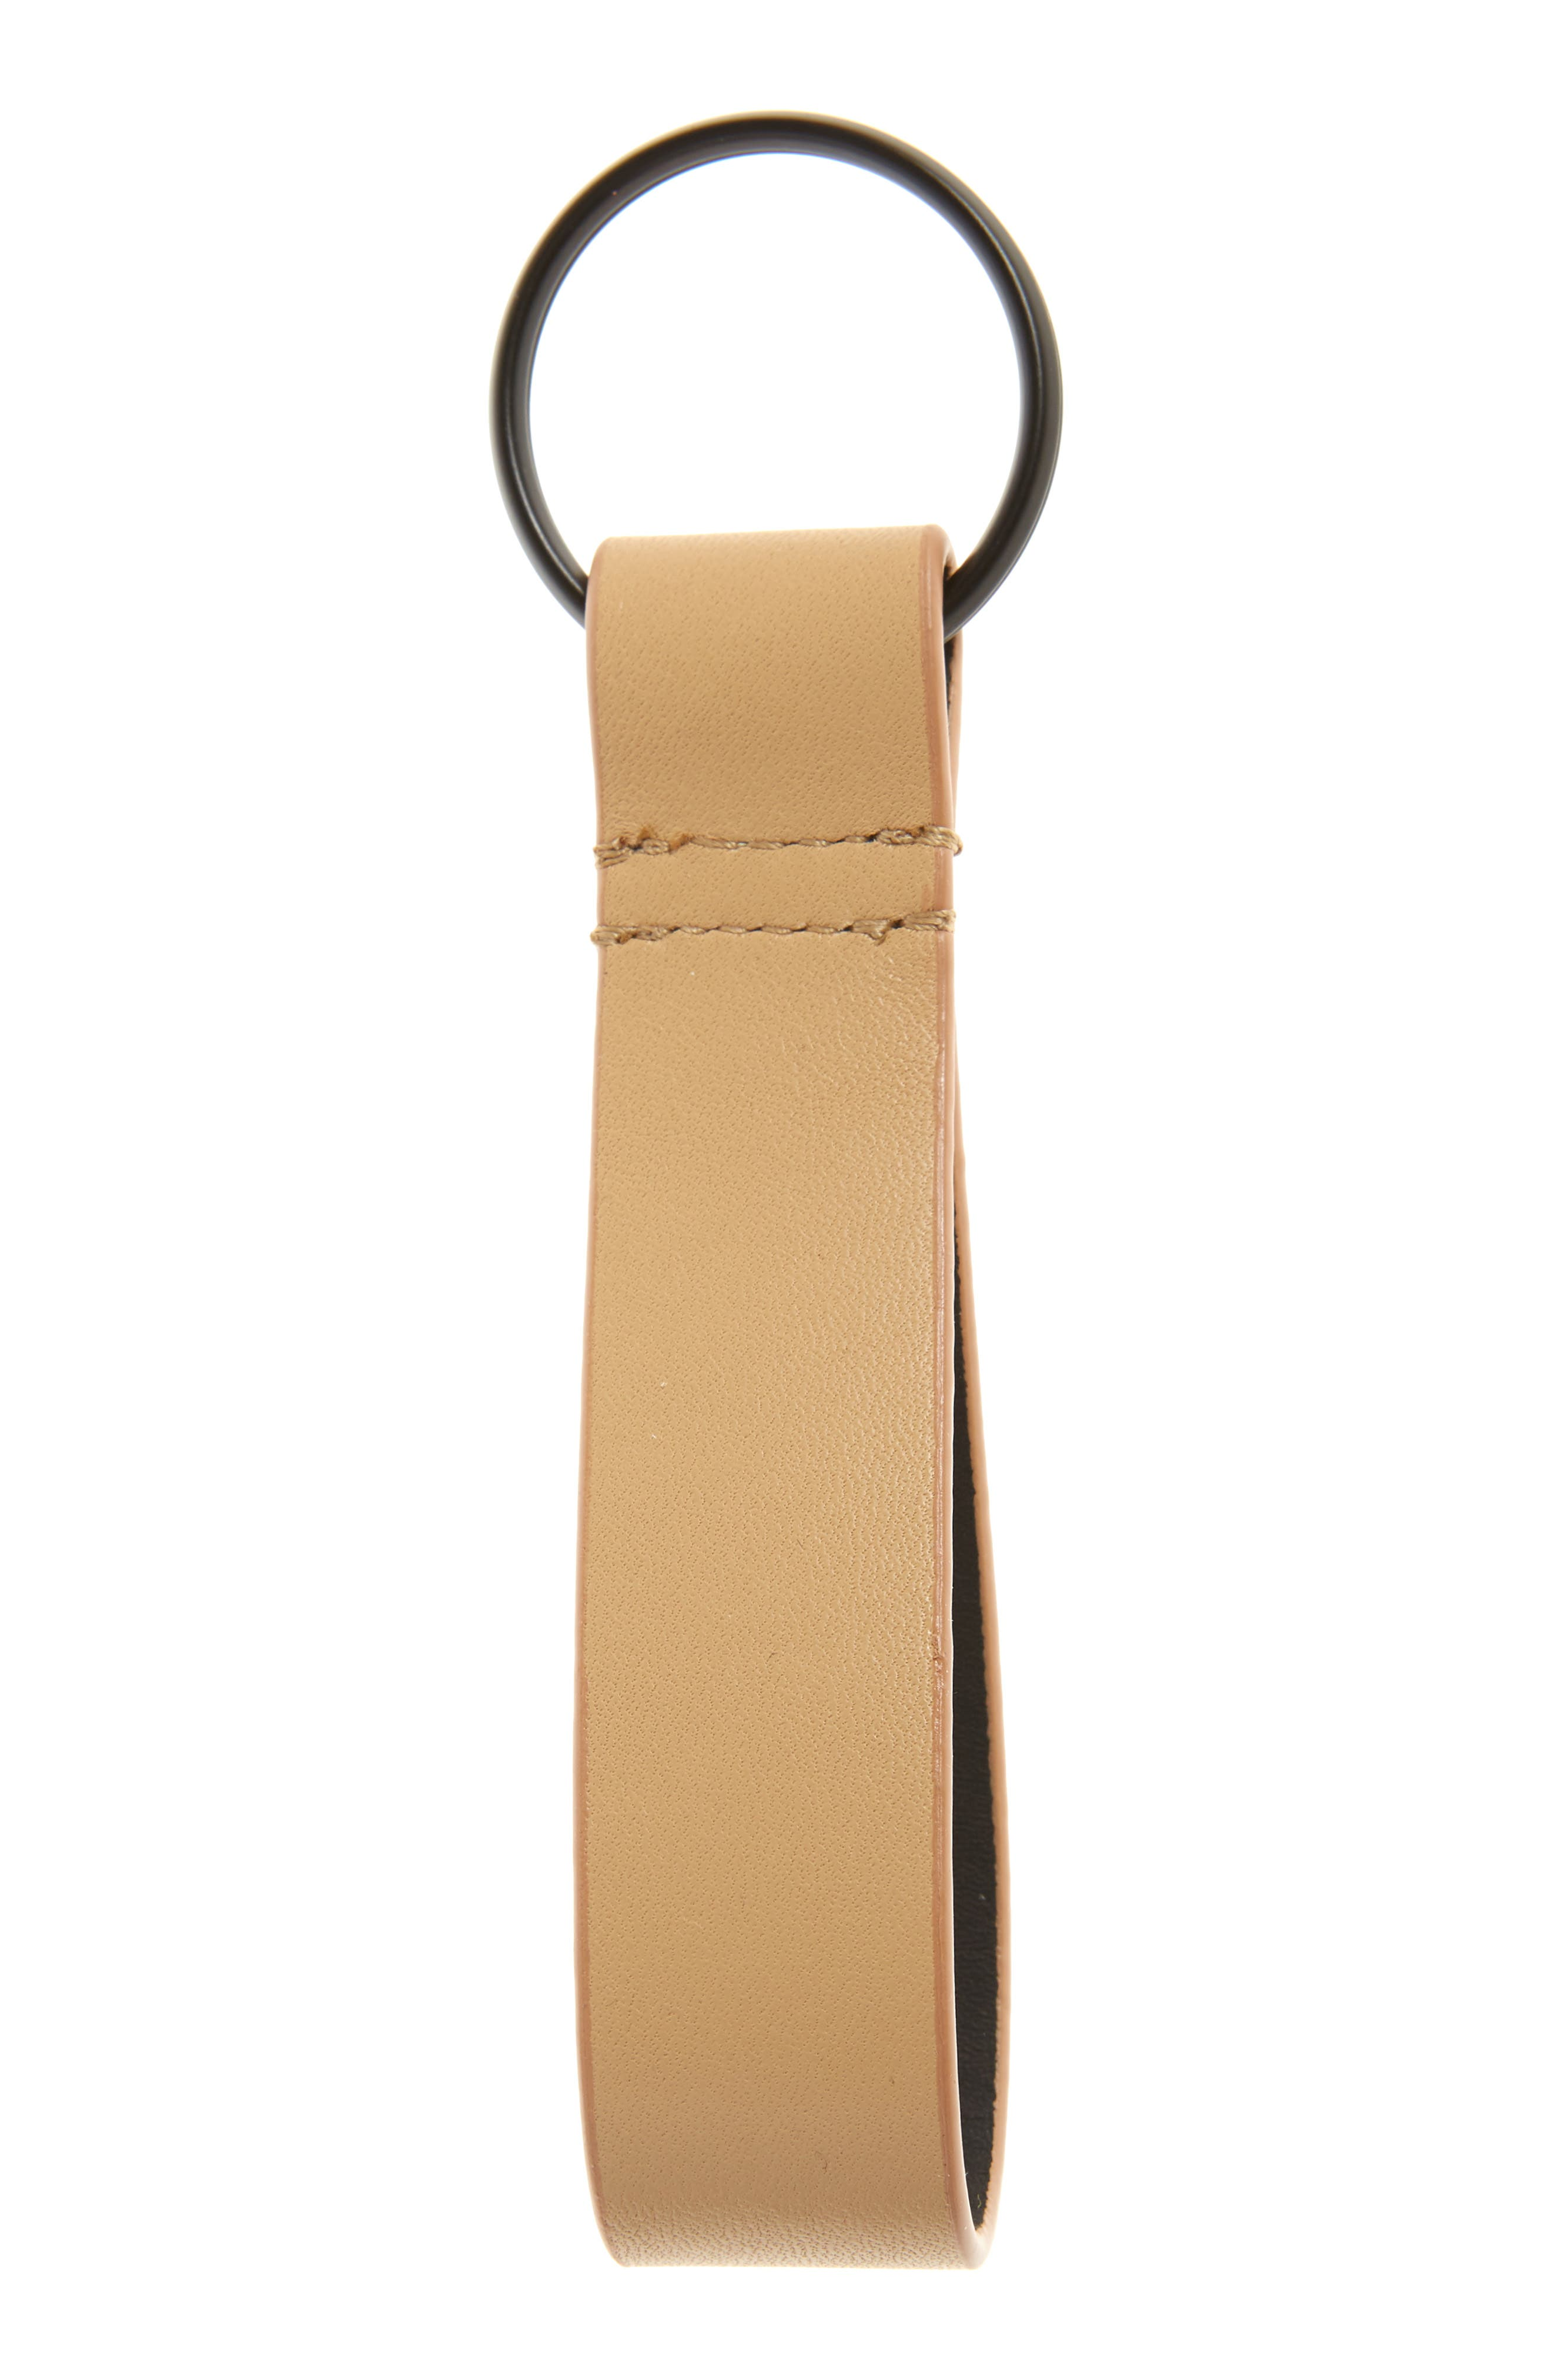 COMMON PROJECTS Nappa Leather Key Ring, Main, color, 250